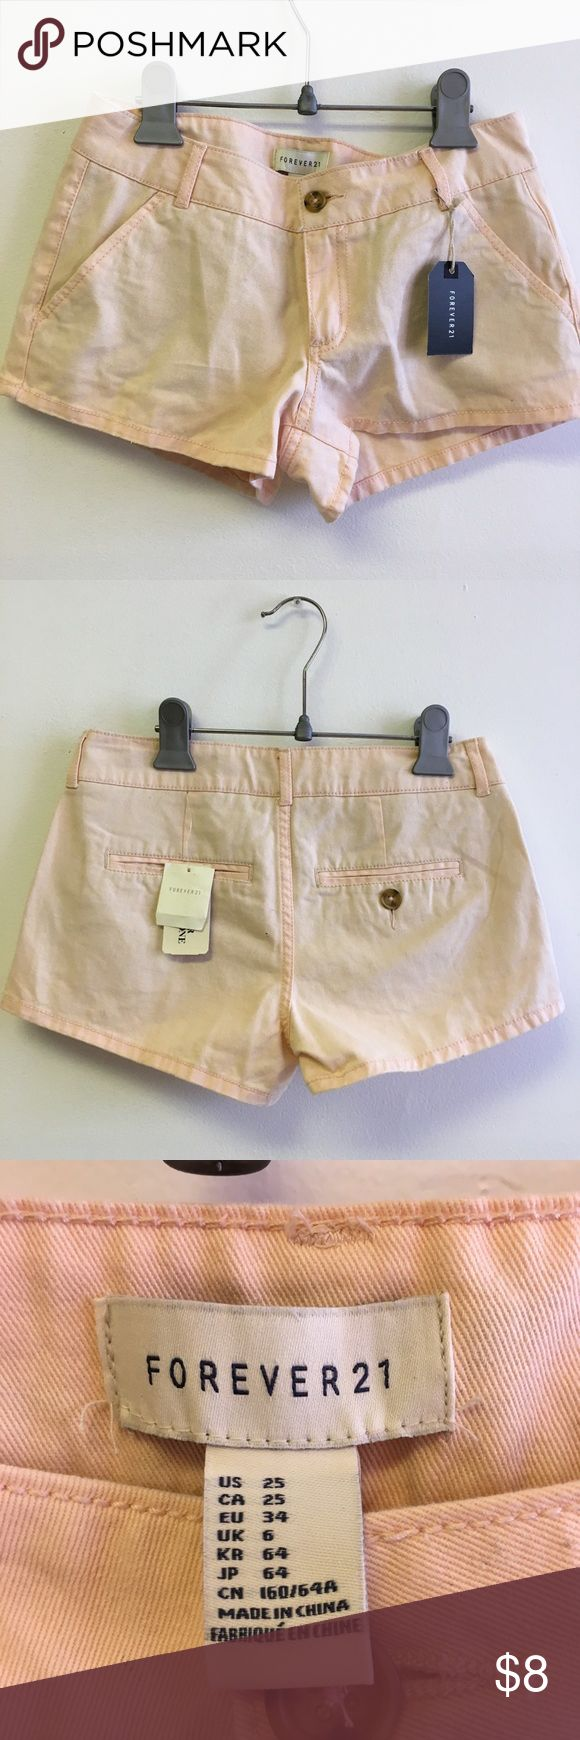 NEW peach shorts 🍑 Peach colored shorts never worn before with tags still attached Forever 21 Shorts Jean Shorts